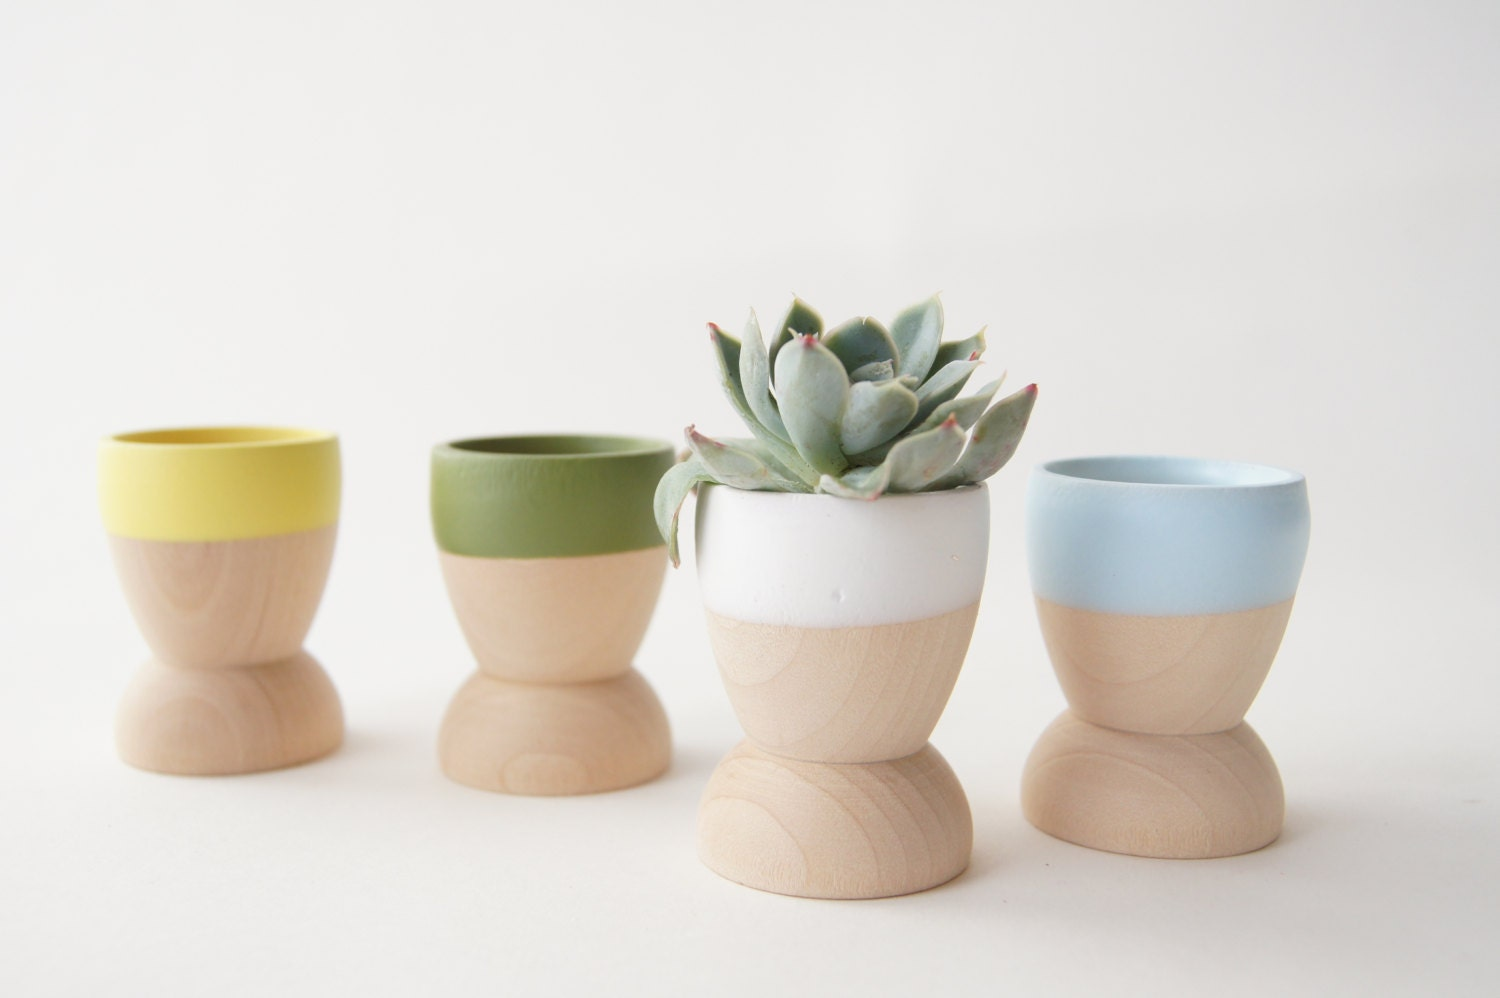 Mini Planters set of 4, Blue, Green, Yellow and White, Natural Wedding, Spring Decor - WindandWillowHome